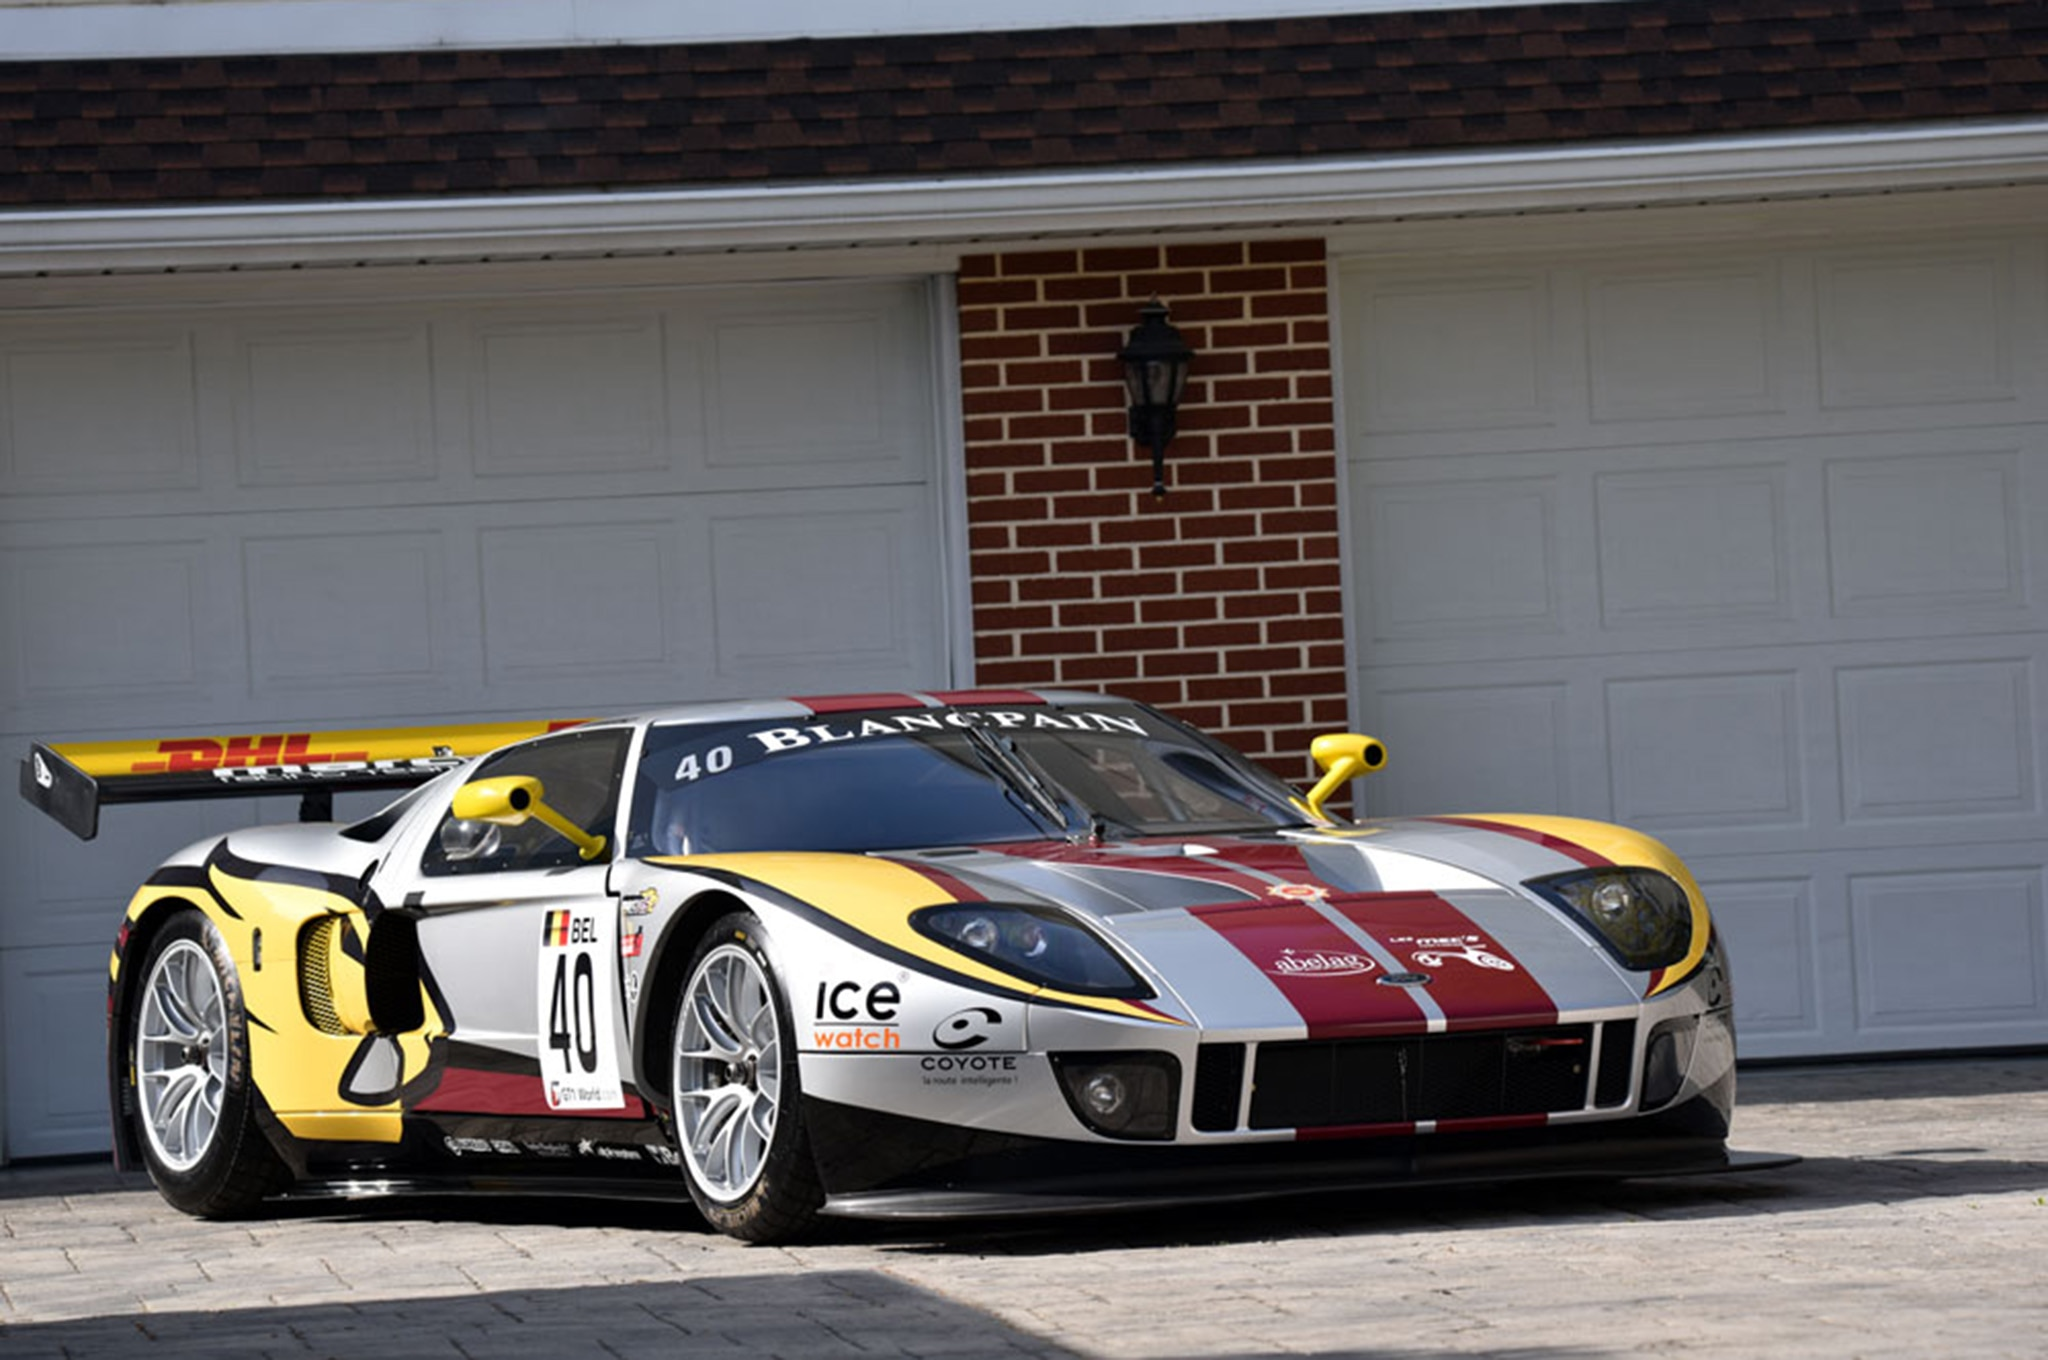 One Of Four Matech Ford Gt Race Cars Up For Sale On Ebay